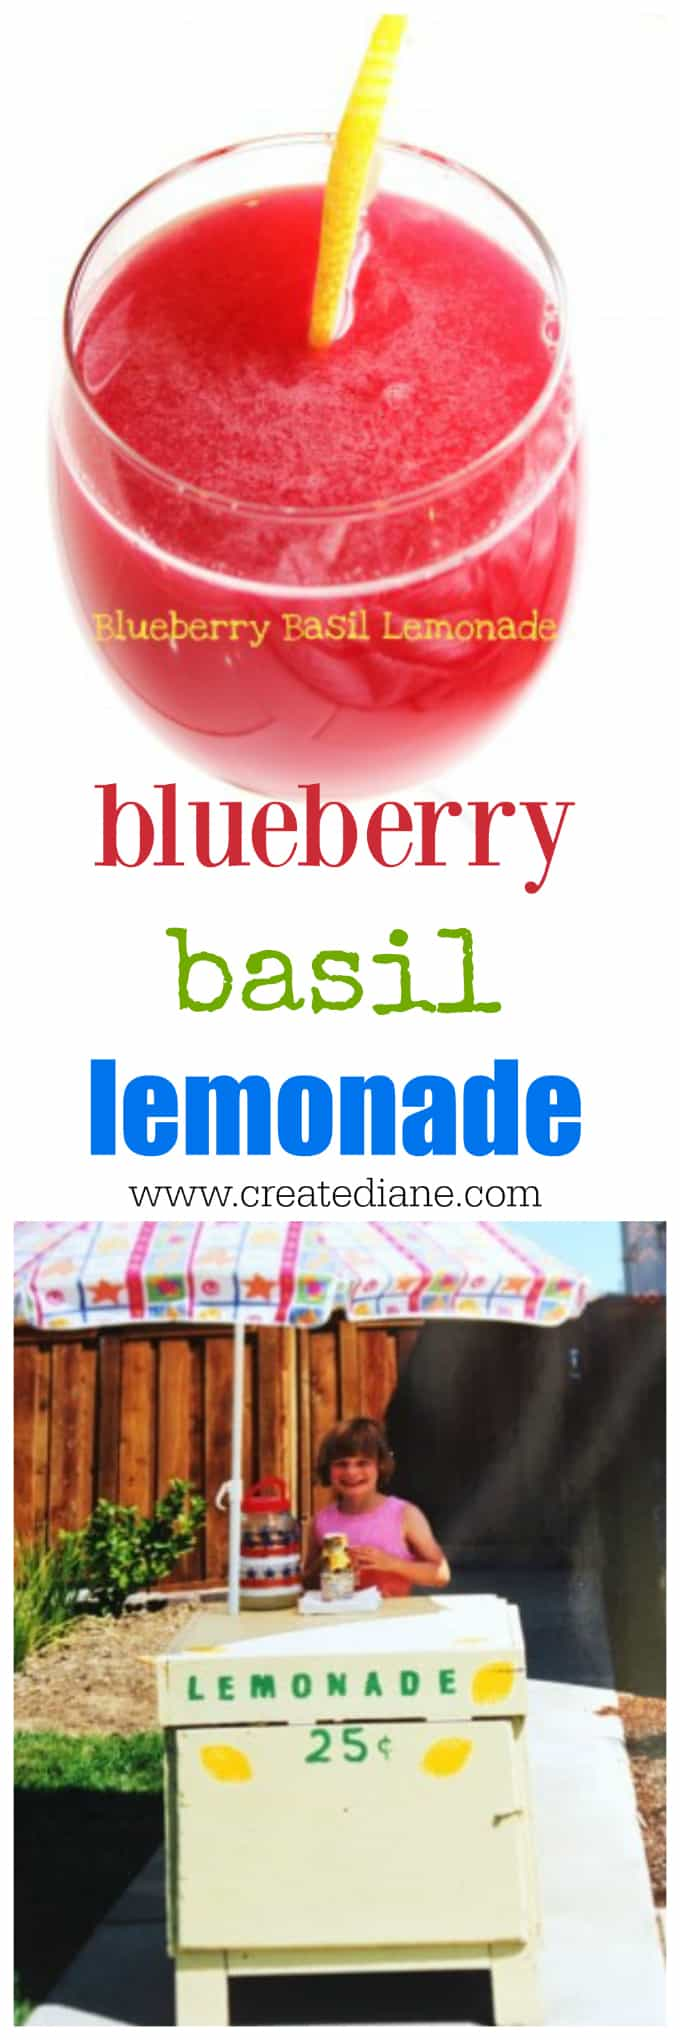 blueberry basil lemonade recipe and the cutest lemonade stand www.createdbydiane.com